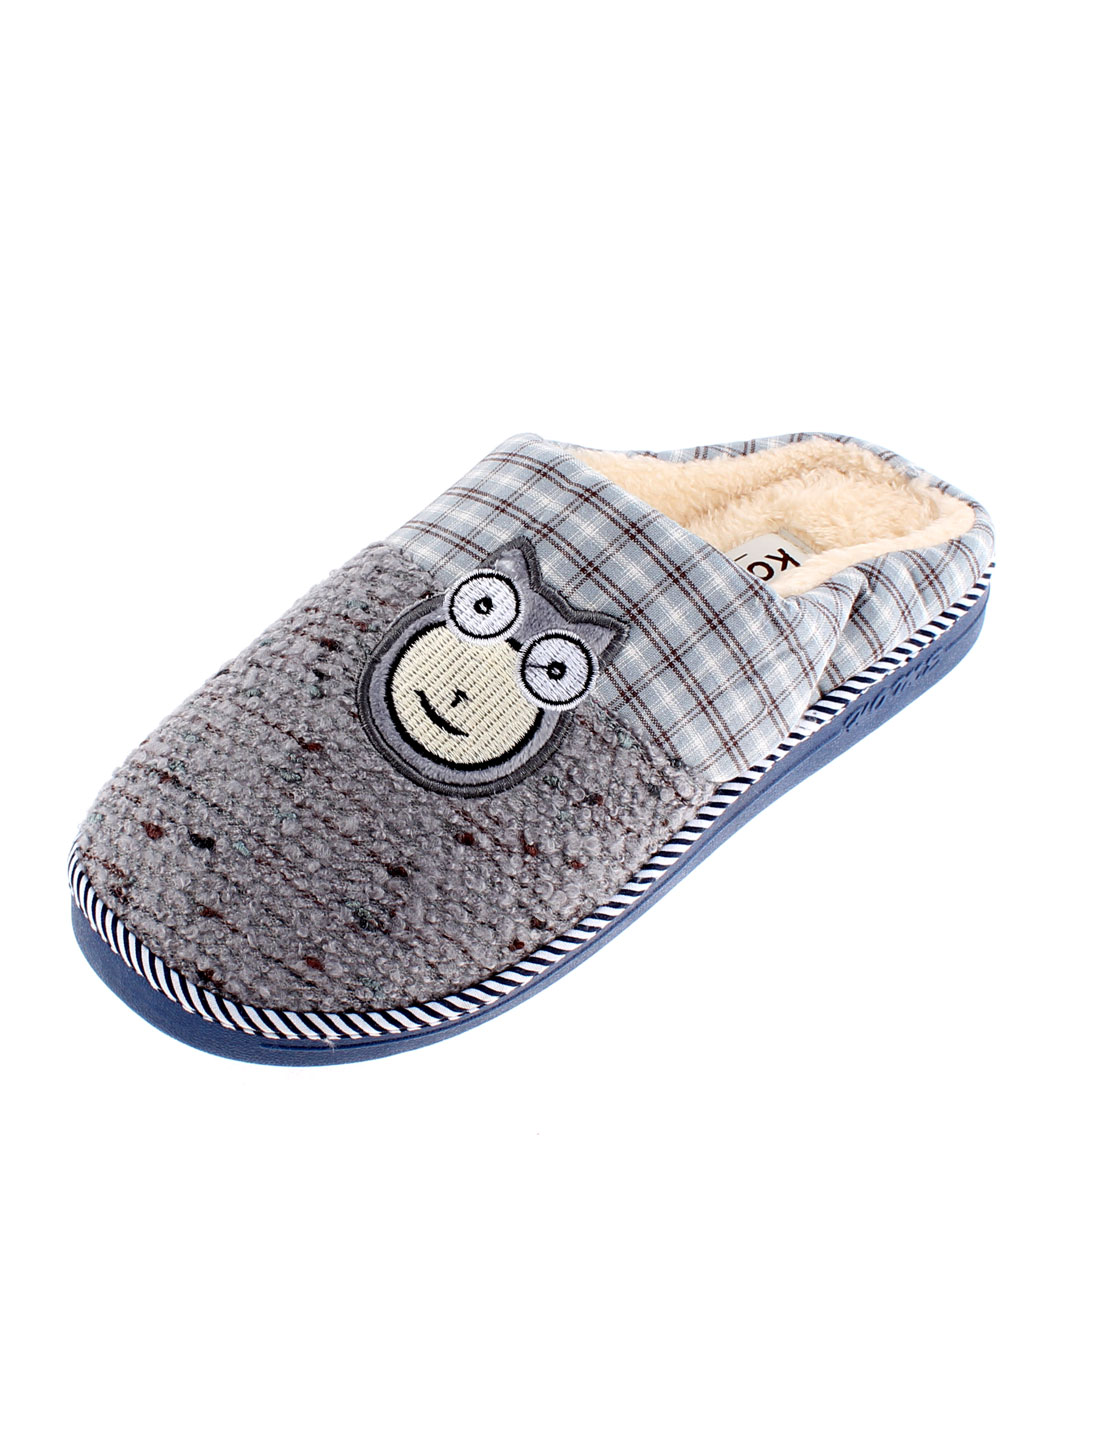 Home Cat Embroidery Anti Slip Warmer Slippers for Women Gray US 9.5